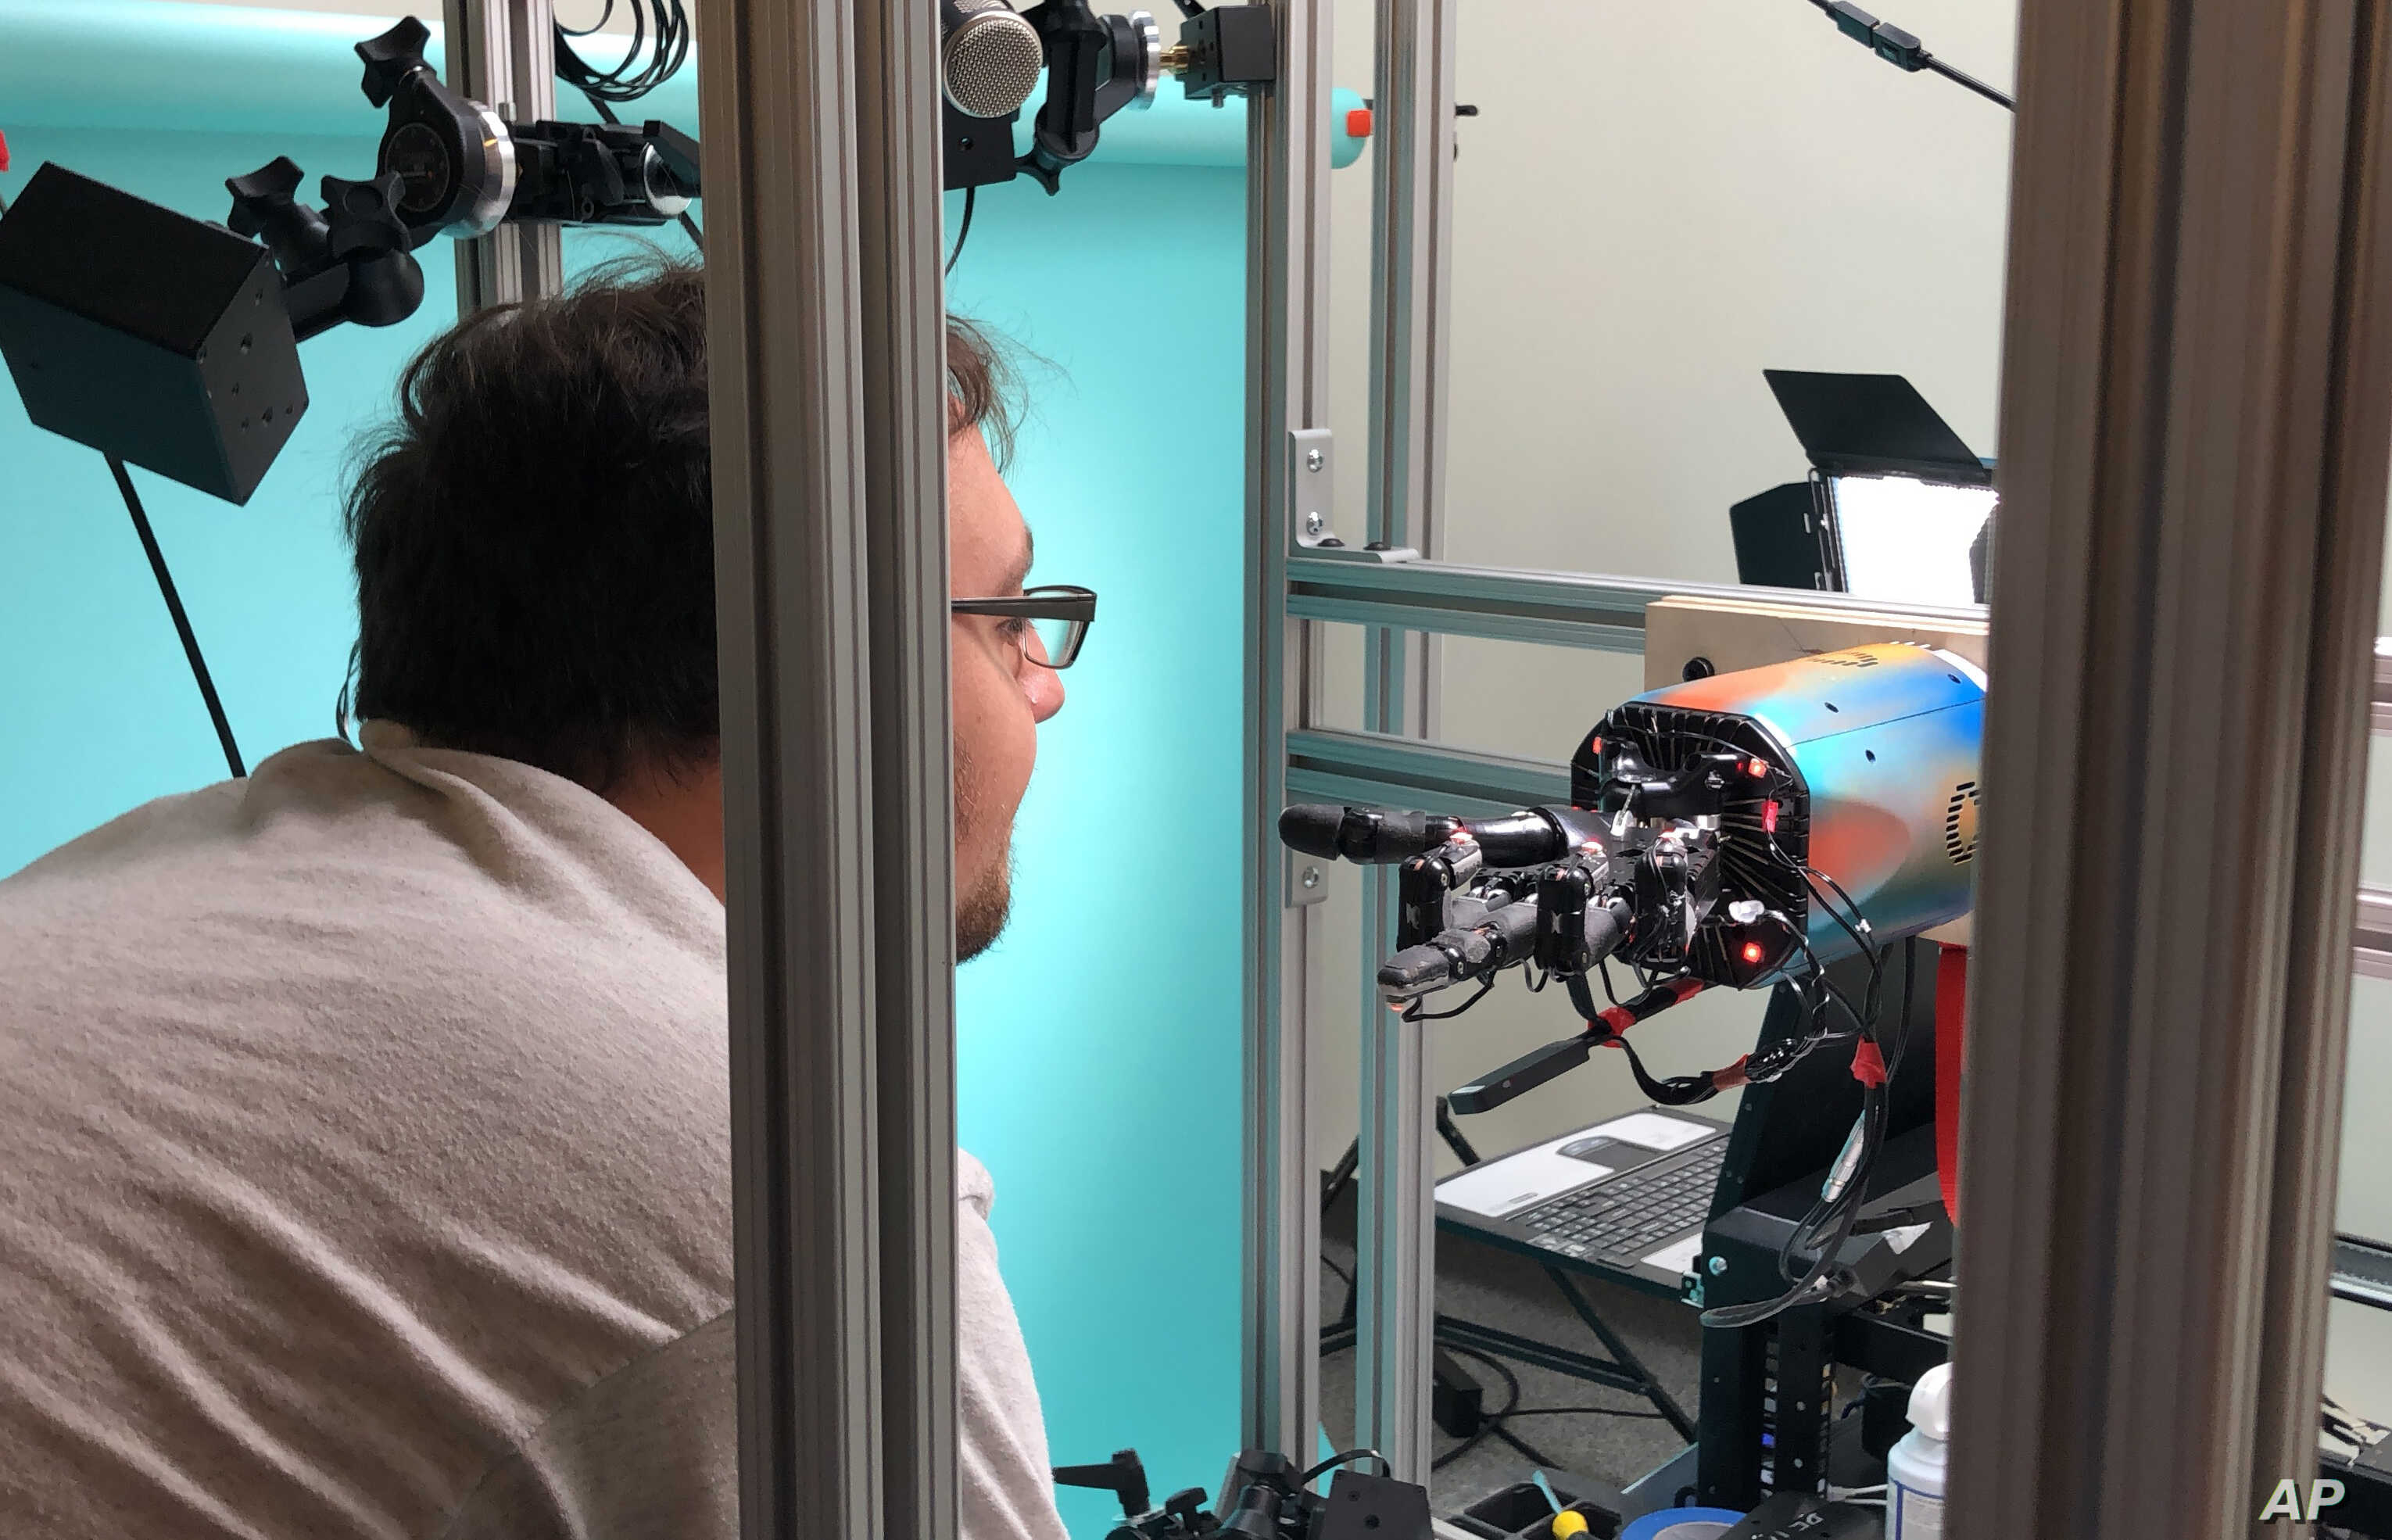 Robotic Hand Can Juggle Cube — With Lots of Training   Voice of